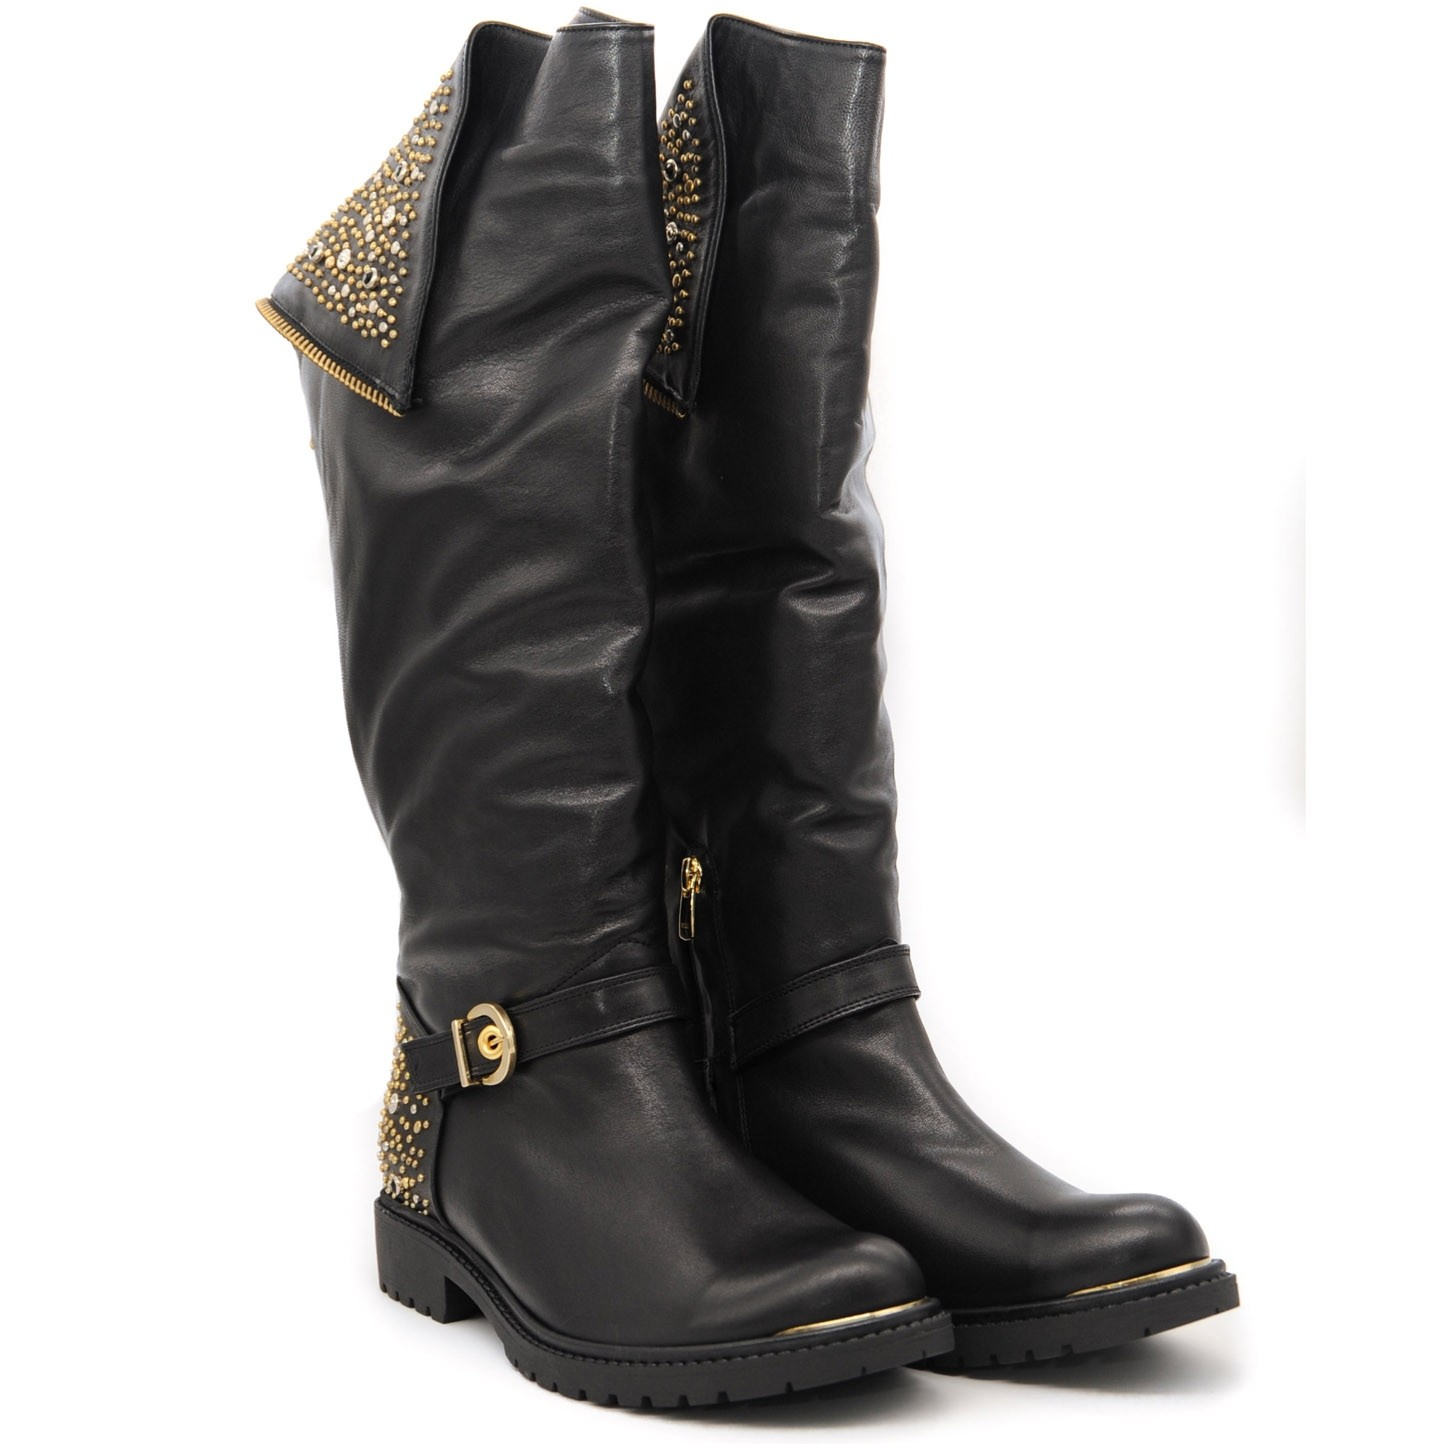 Smooth Leather Knee High Biker Boots with Stud Detailing Back Zip Fastening and Buckle